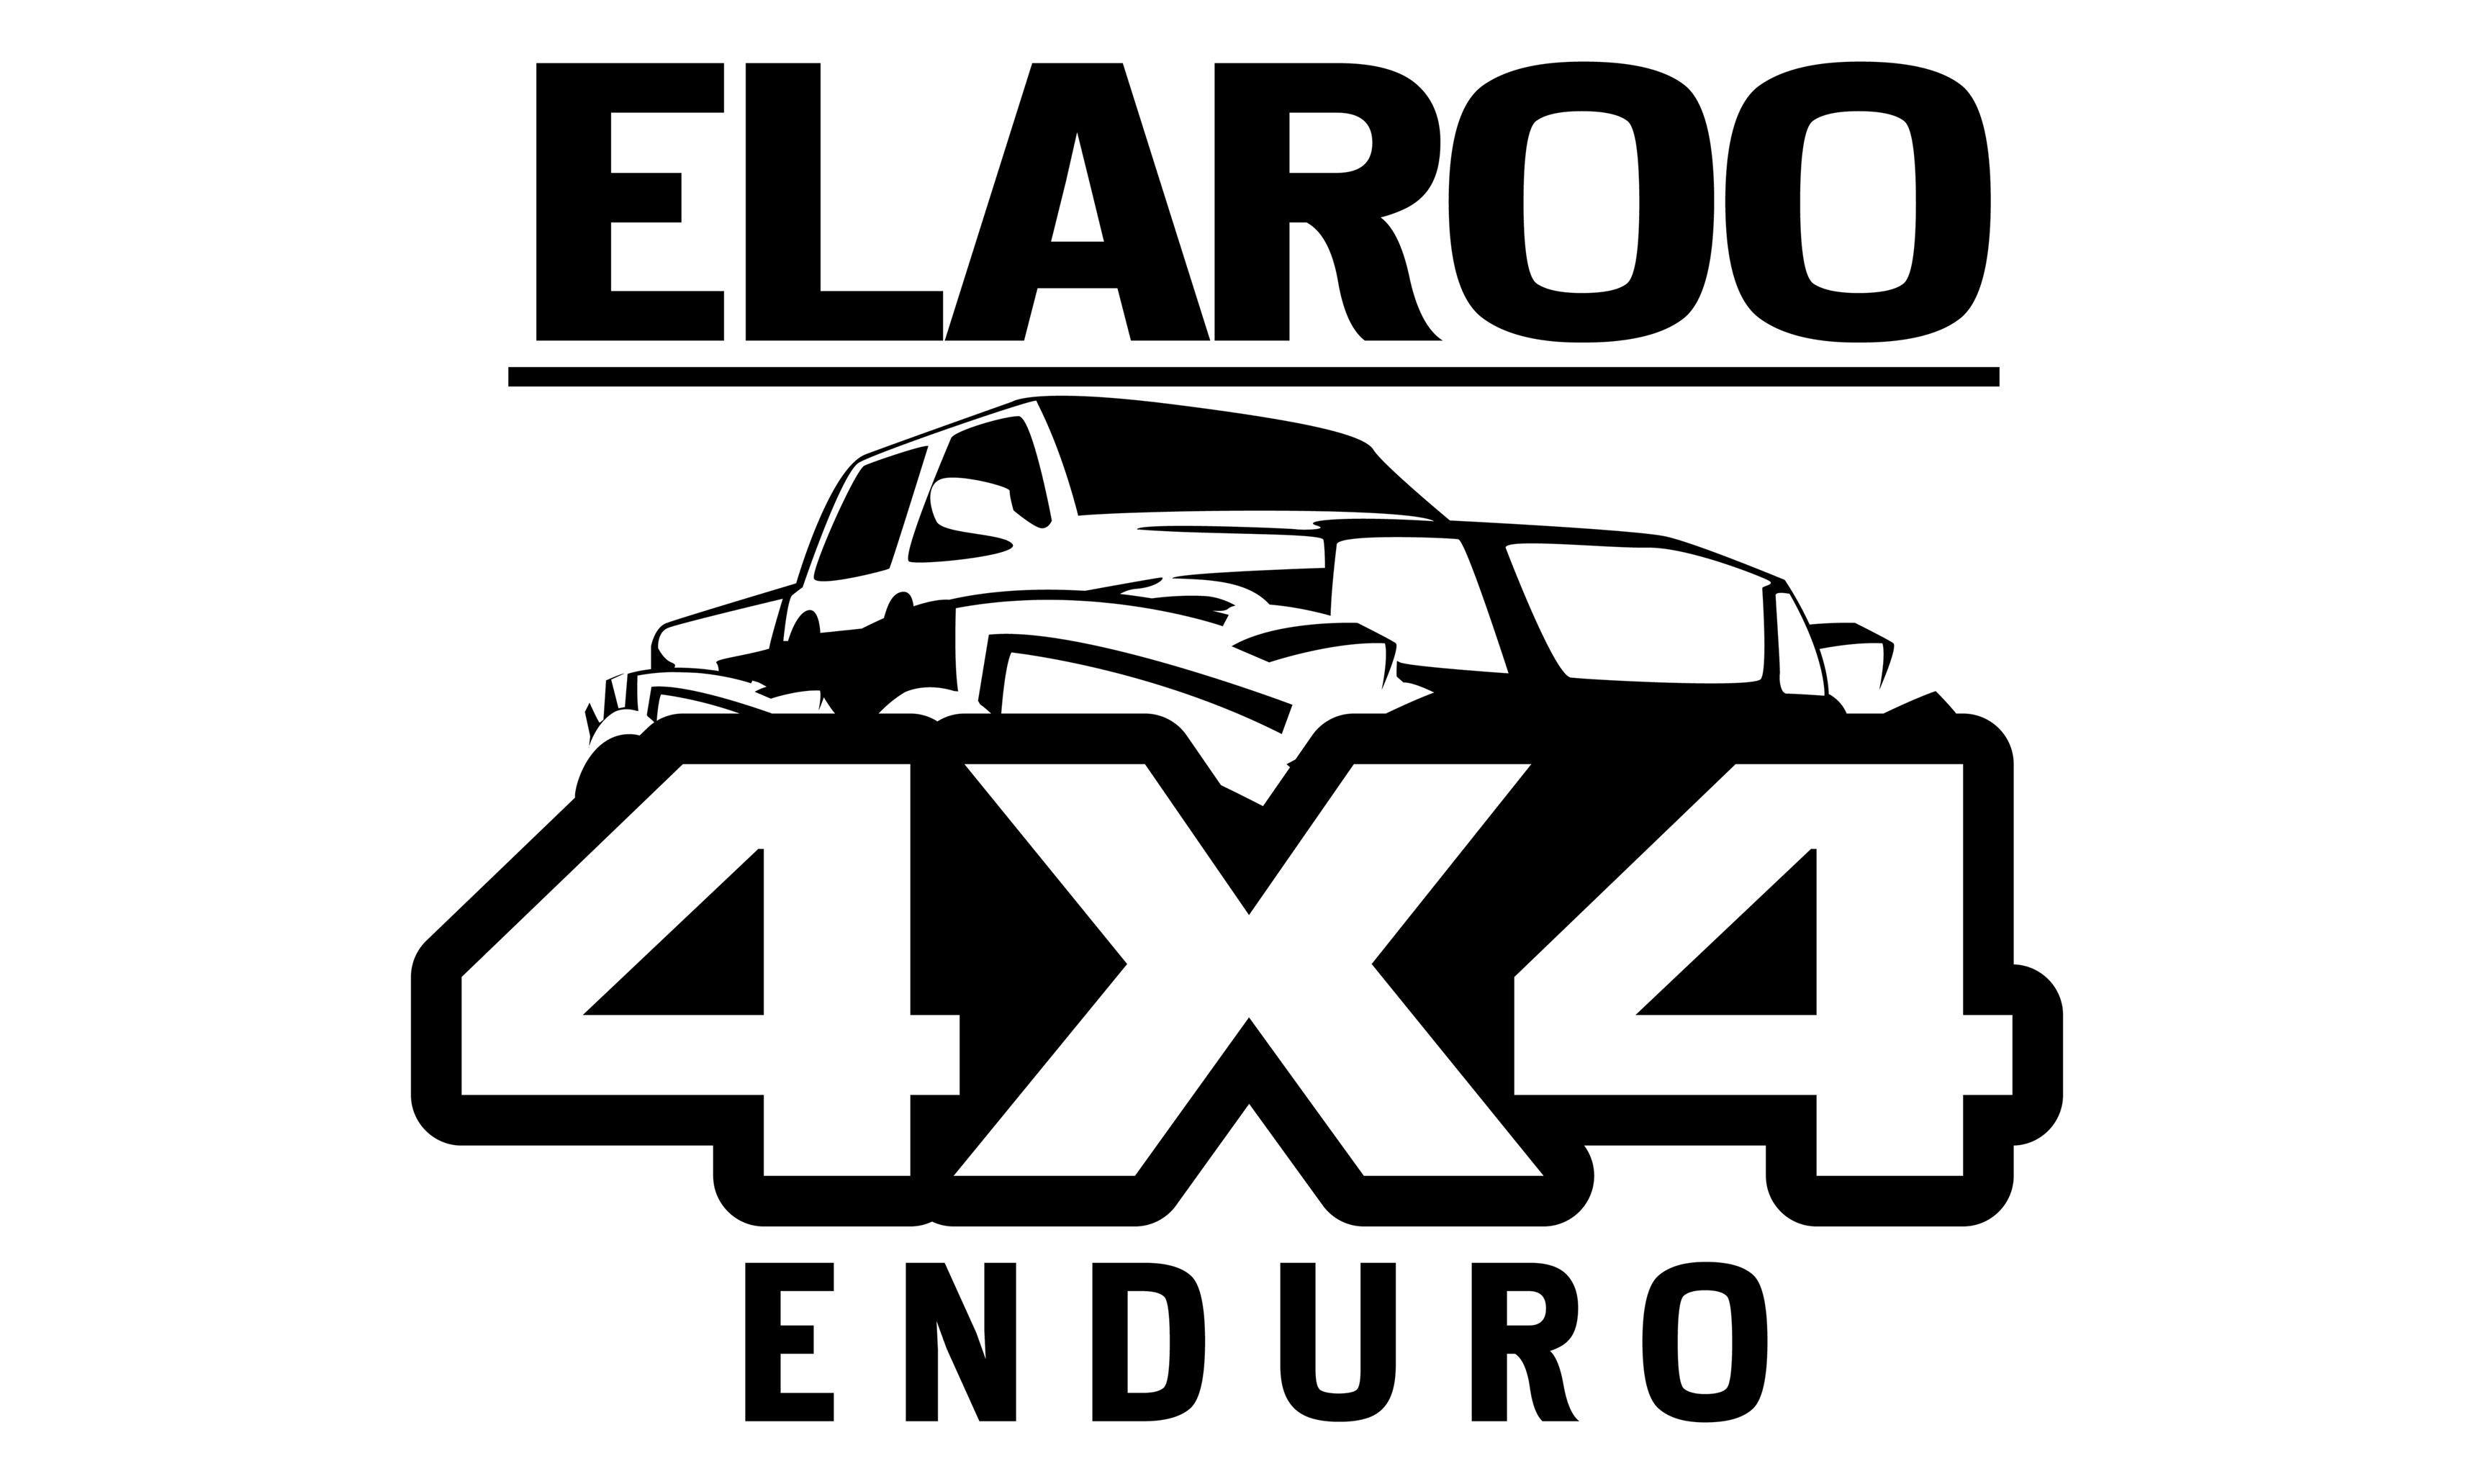 Tickets For Elaroo 4x4 Enduro In Mackay From Ticketbooth